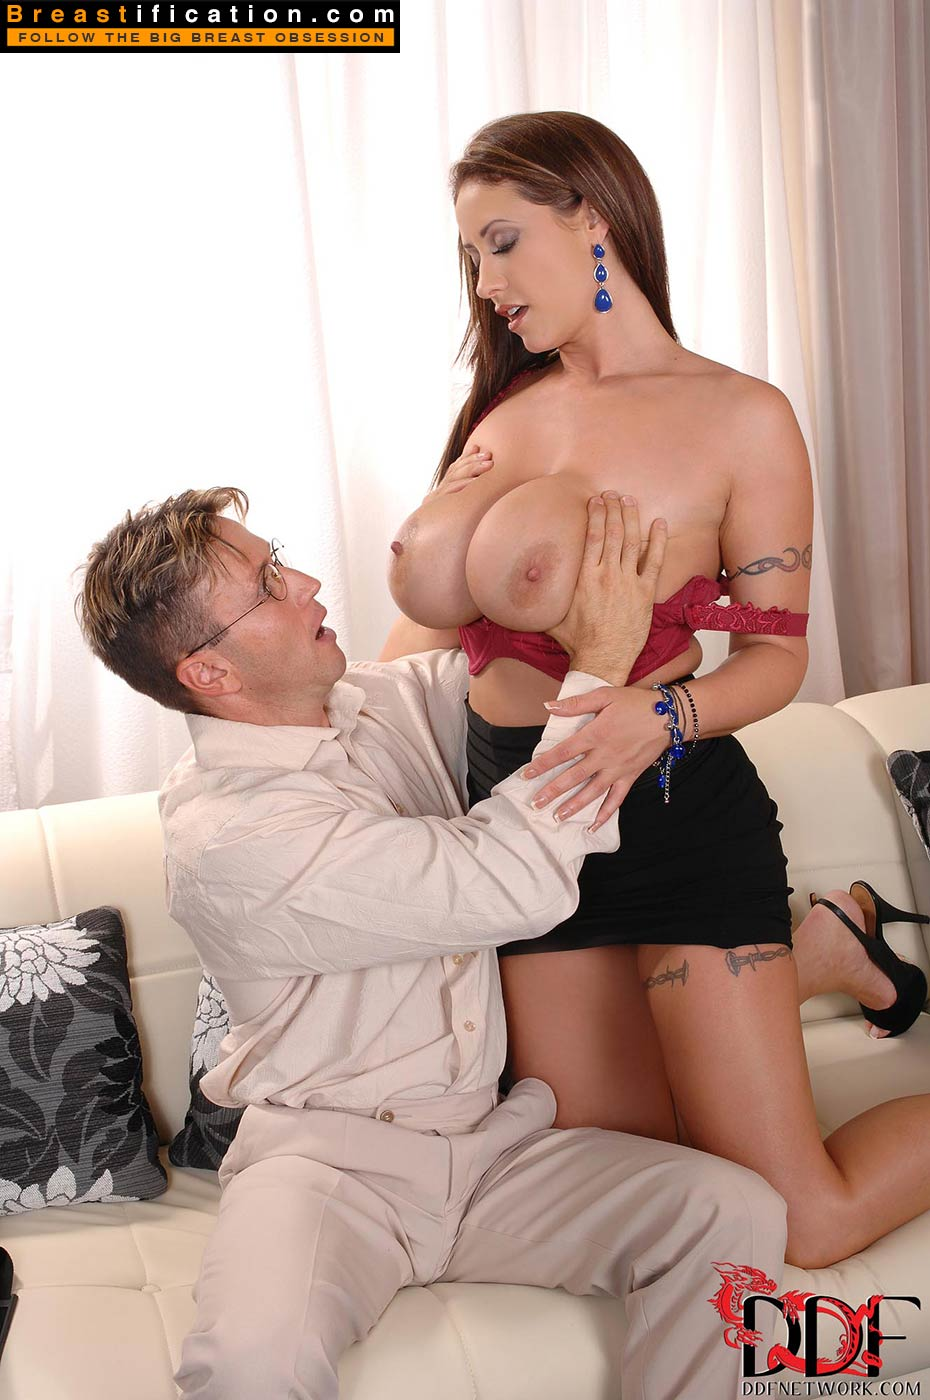 Bonne Squeezing huge boobs has great